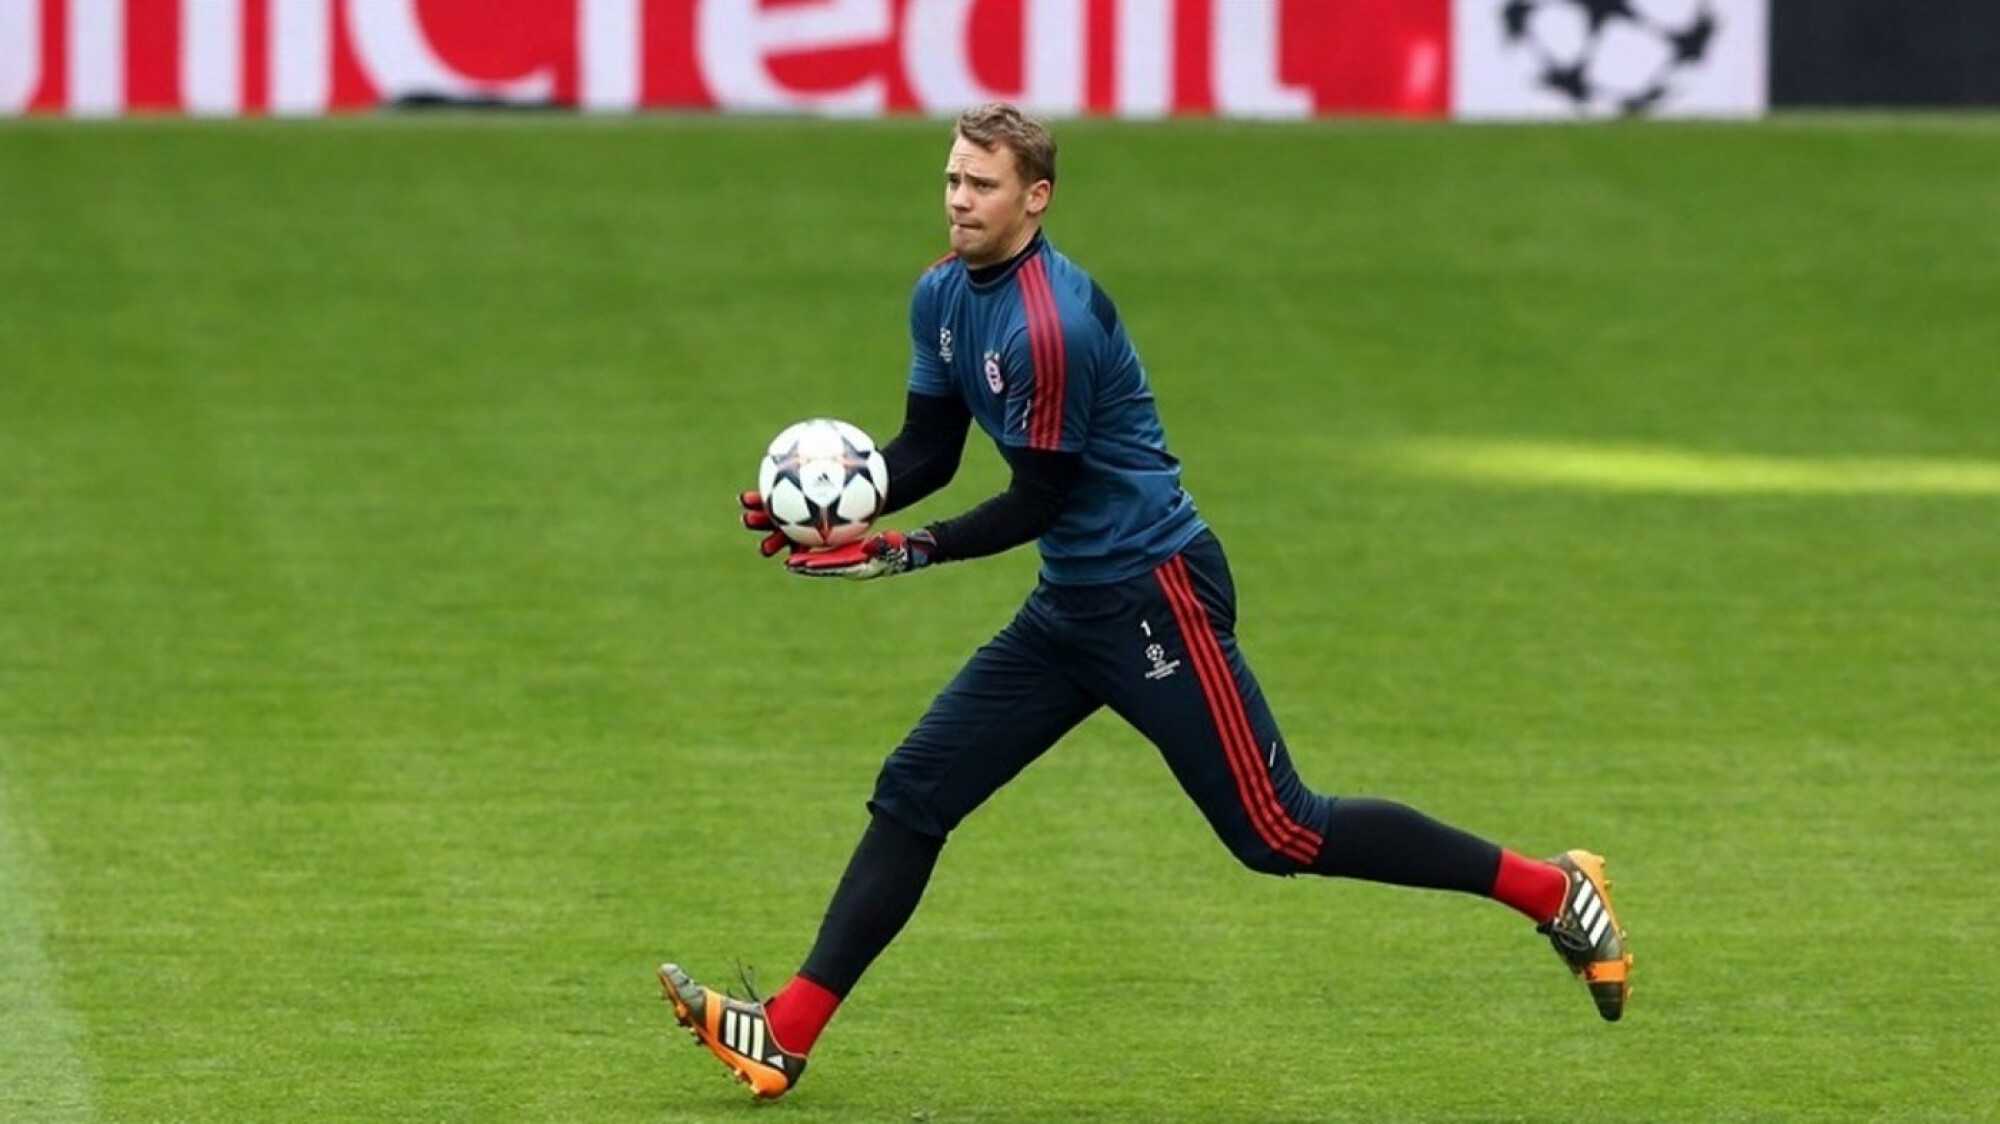 Breaking News: Manuel Neuer back in action for the DFB Pokal finals